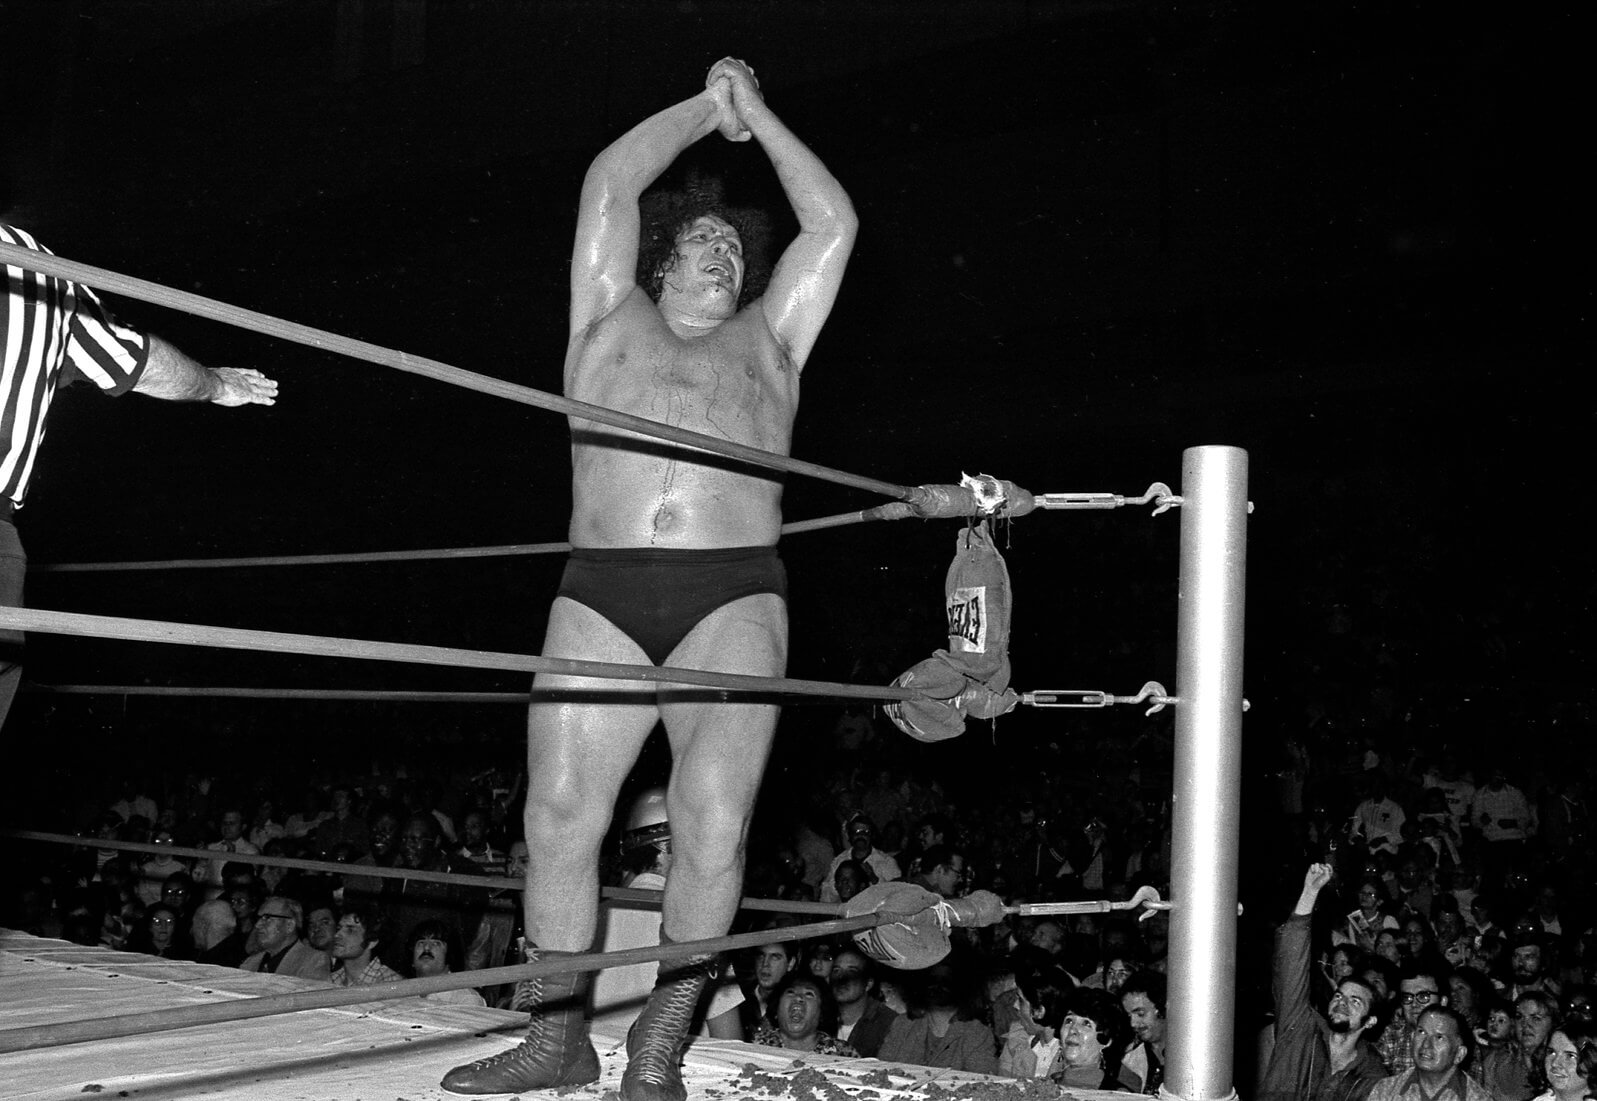 Andre the Giant in Ted Pushinsky's <em>Fightin' and Dancin'</em> series.